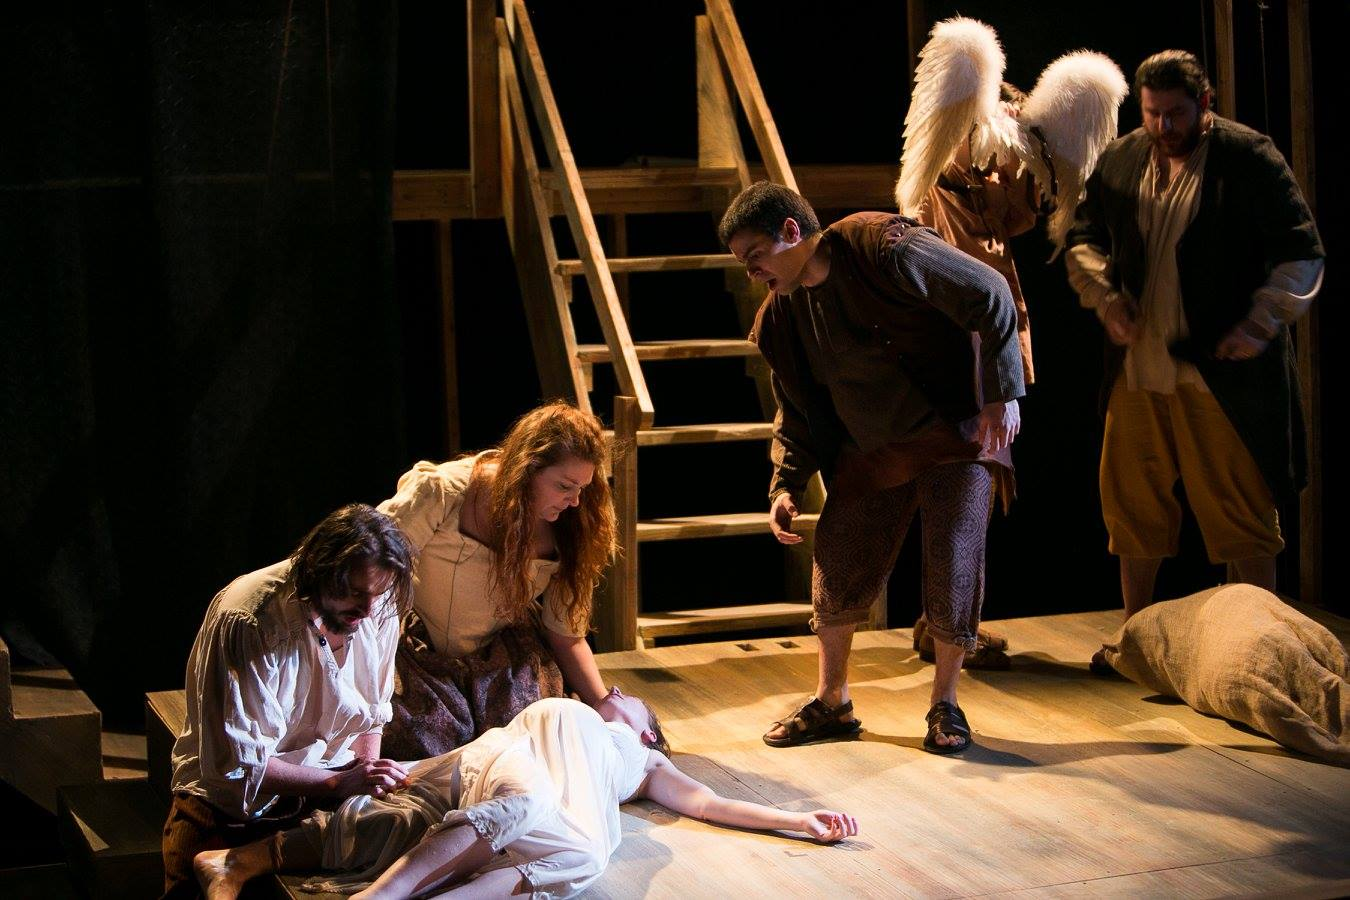 James, Mary 2, Mary 1, Pontius, Simon, and Director from Act 1 of Sarah Ruhl's Passion Play costume design by Katharine Tarkulich